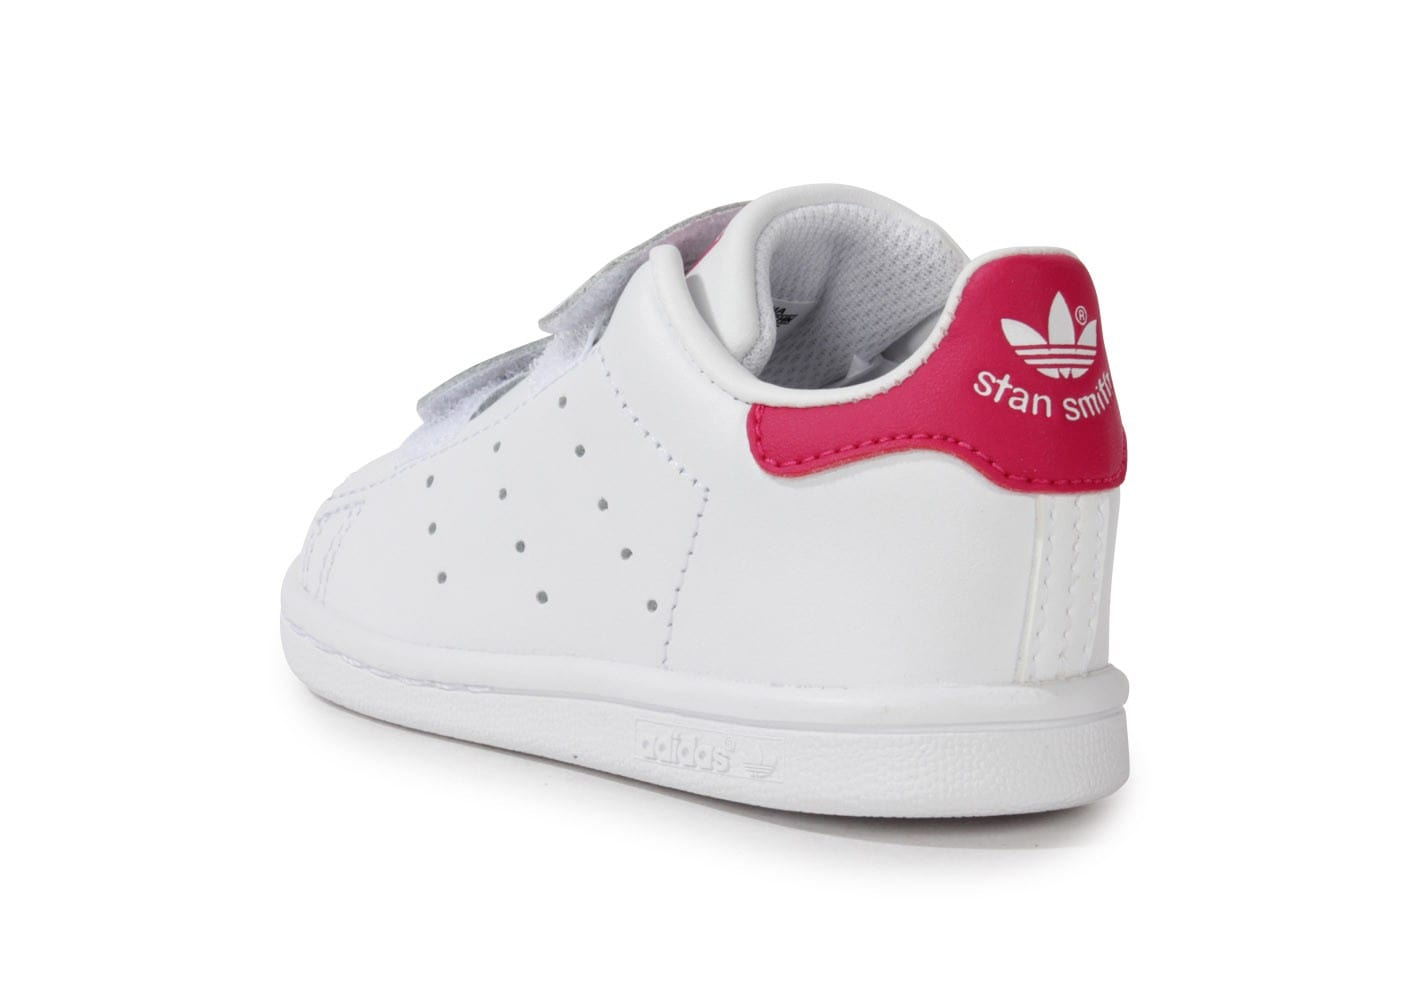 adidas stan smith blanche et rose b b chaussures adidas chausport. Black Bedroom Furniture Sets. Home Design Ideas